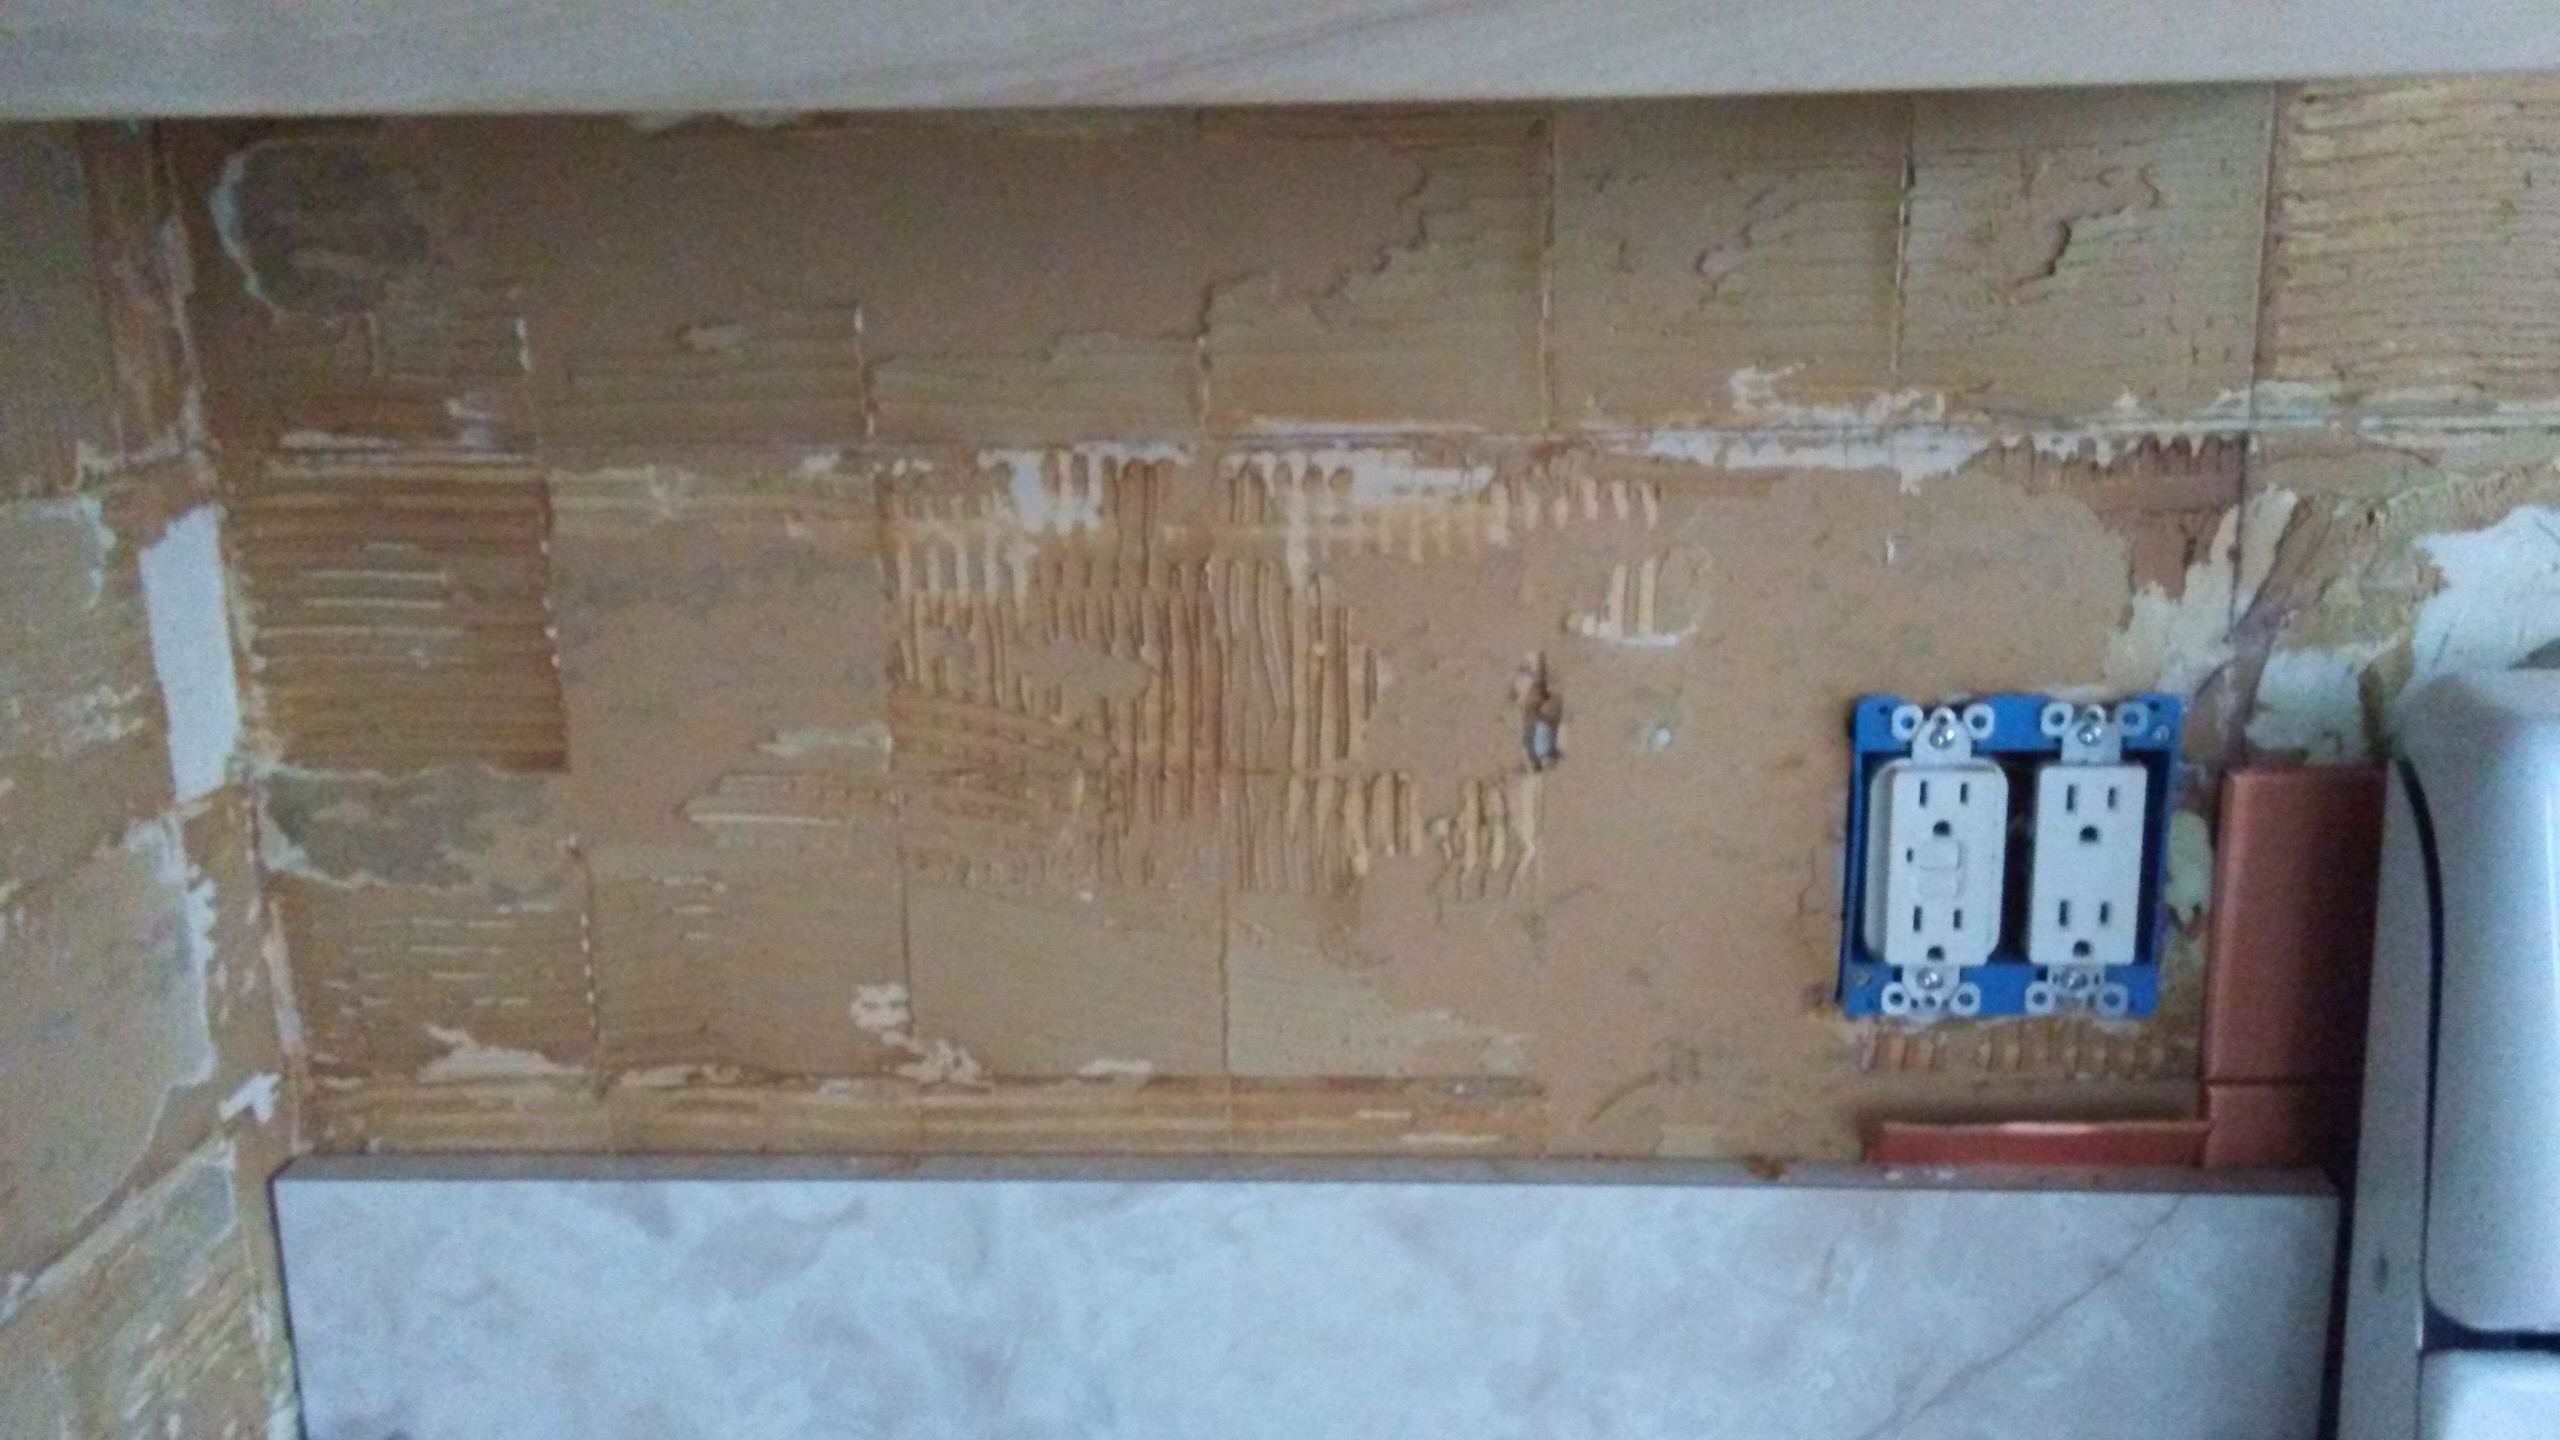 Walls How To Remove Metal Tile Adhesive From